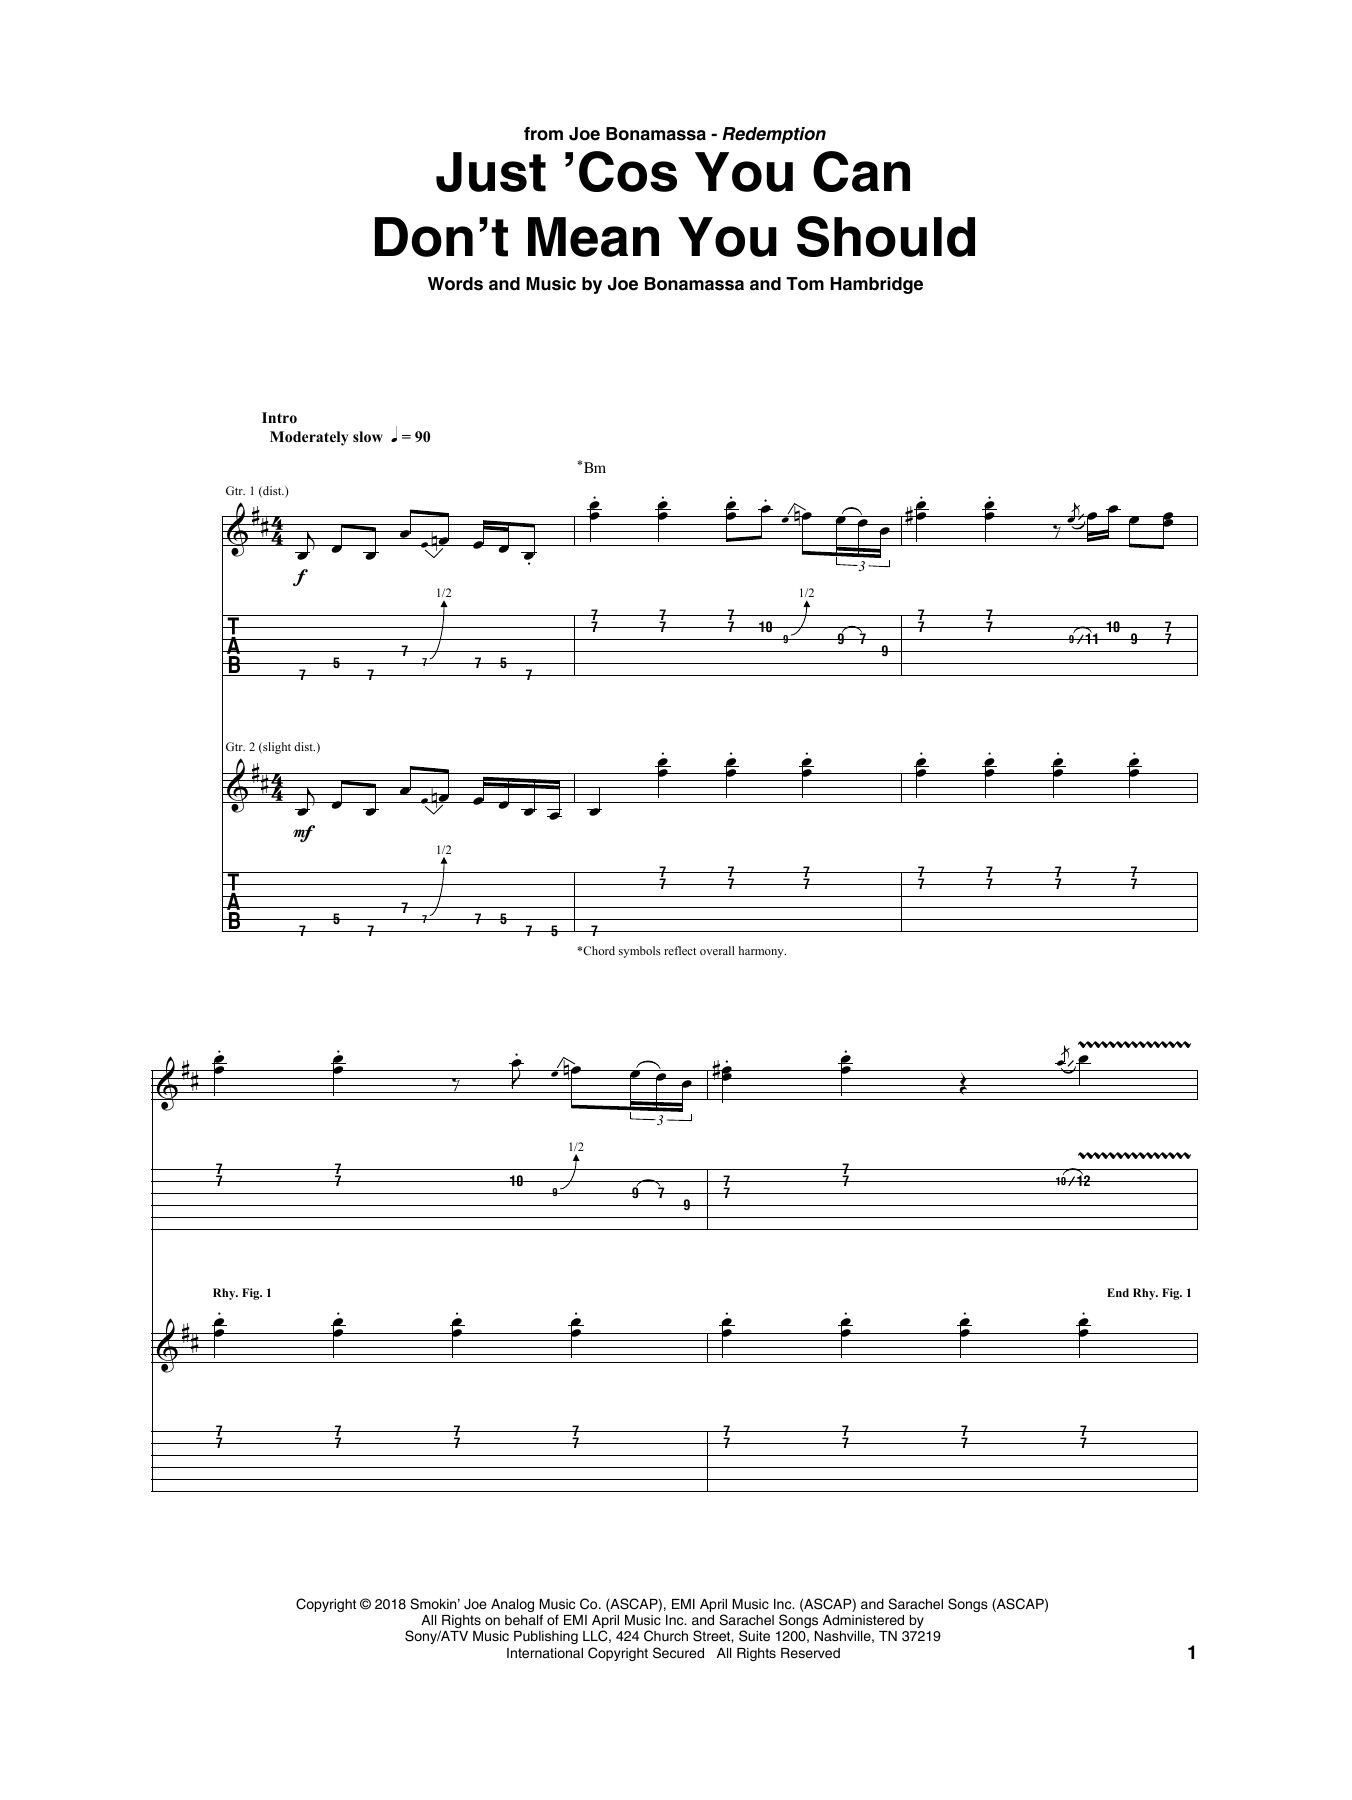 Just 'Cos You Can Don't Mean You Should (Guitar Tab)